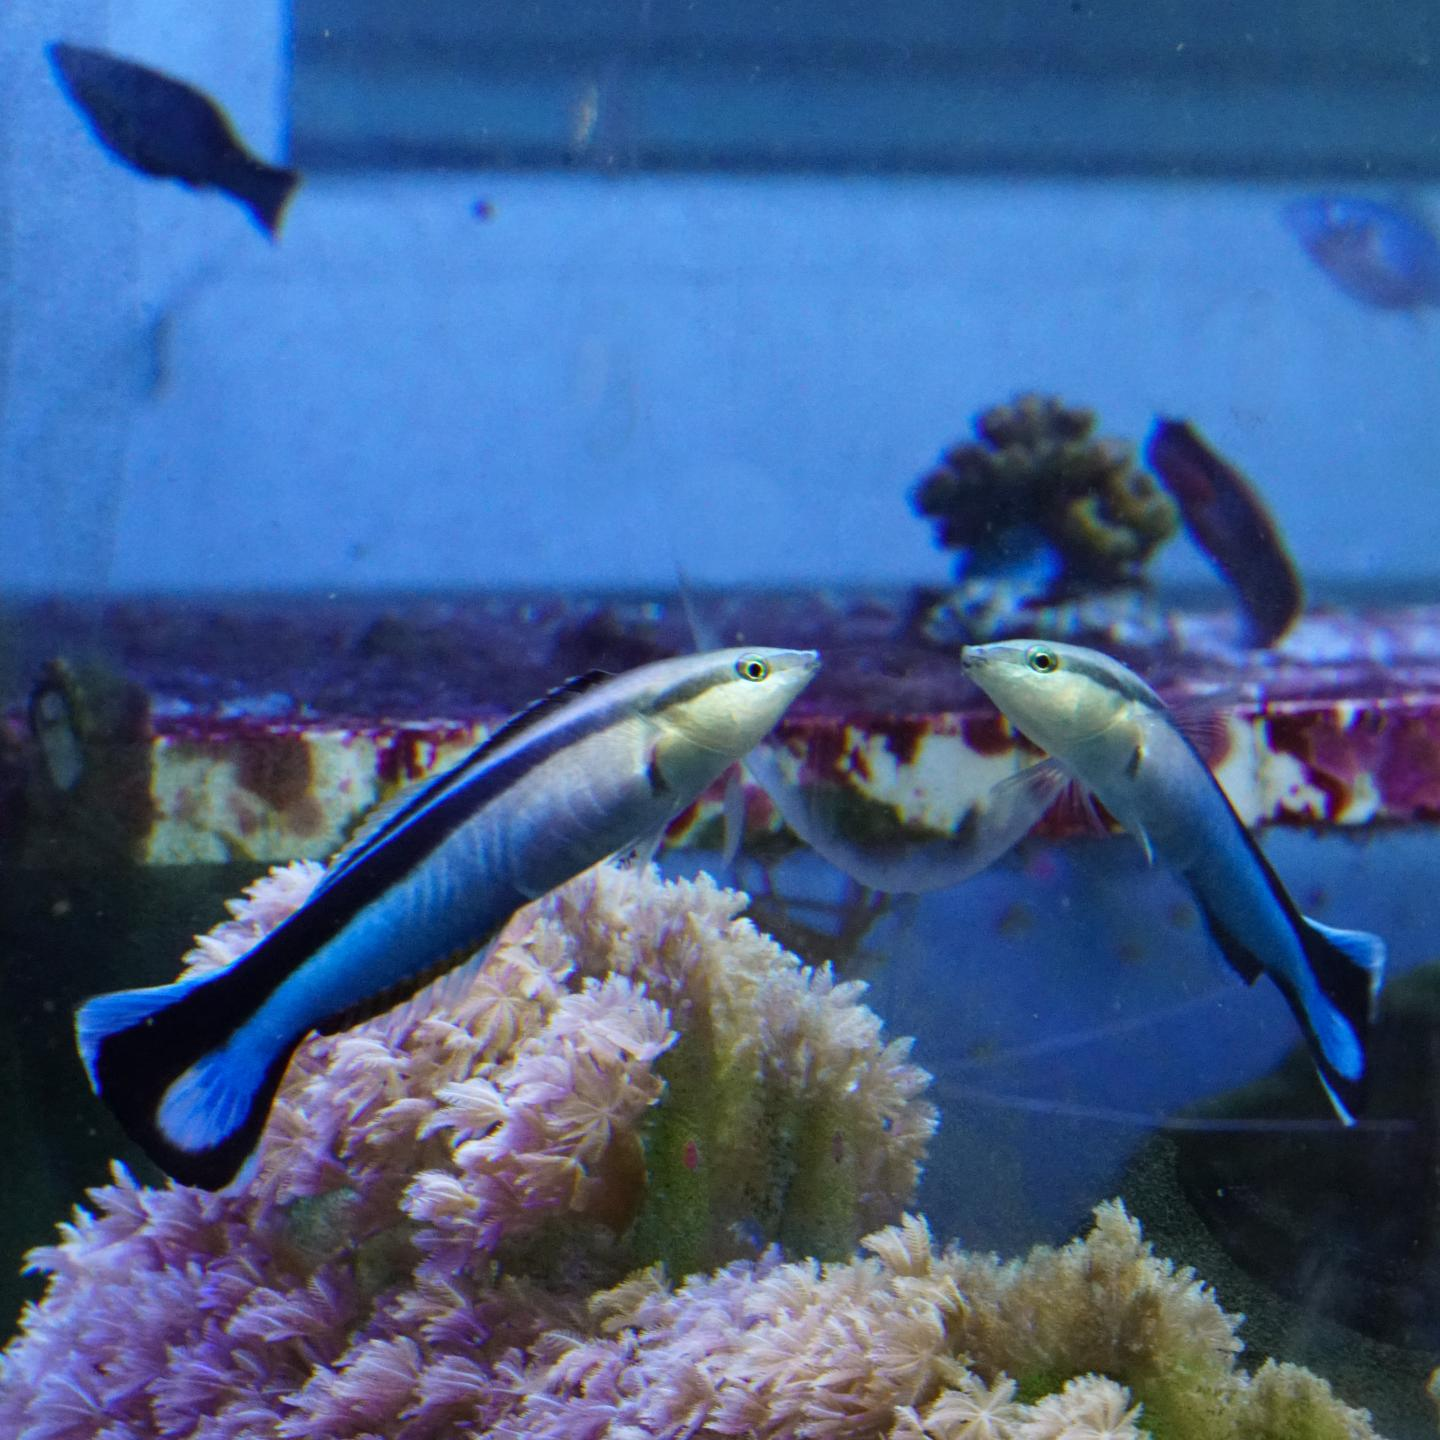 Do Fish Recognize themselves in the Mirror?